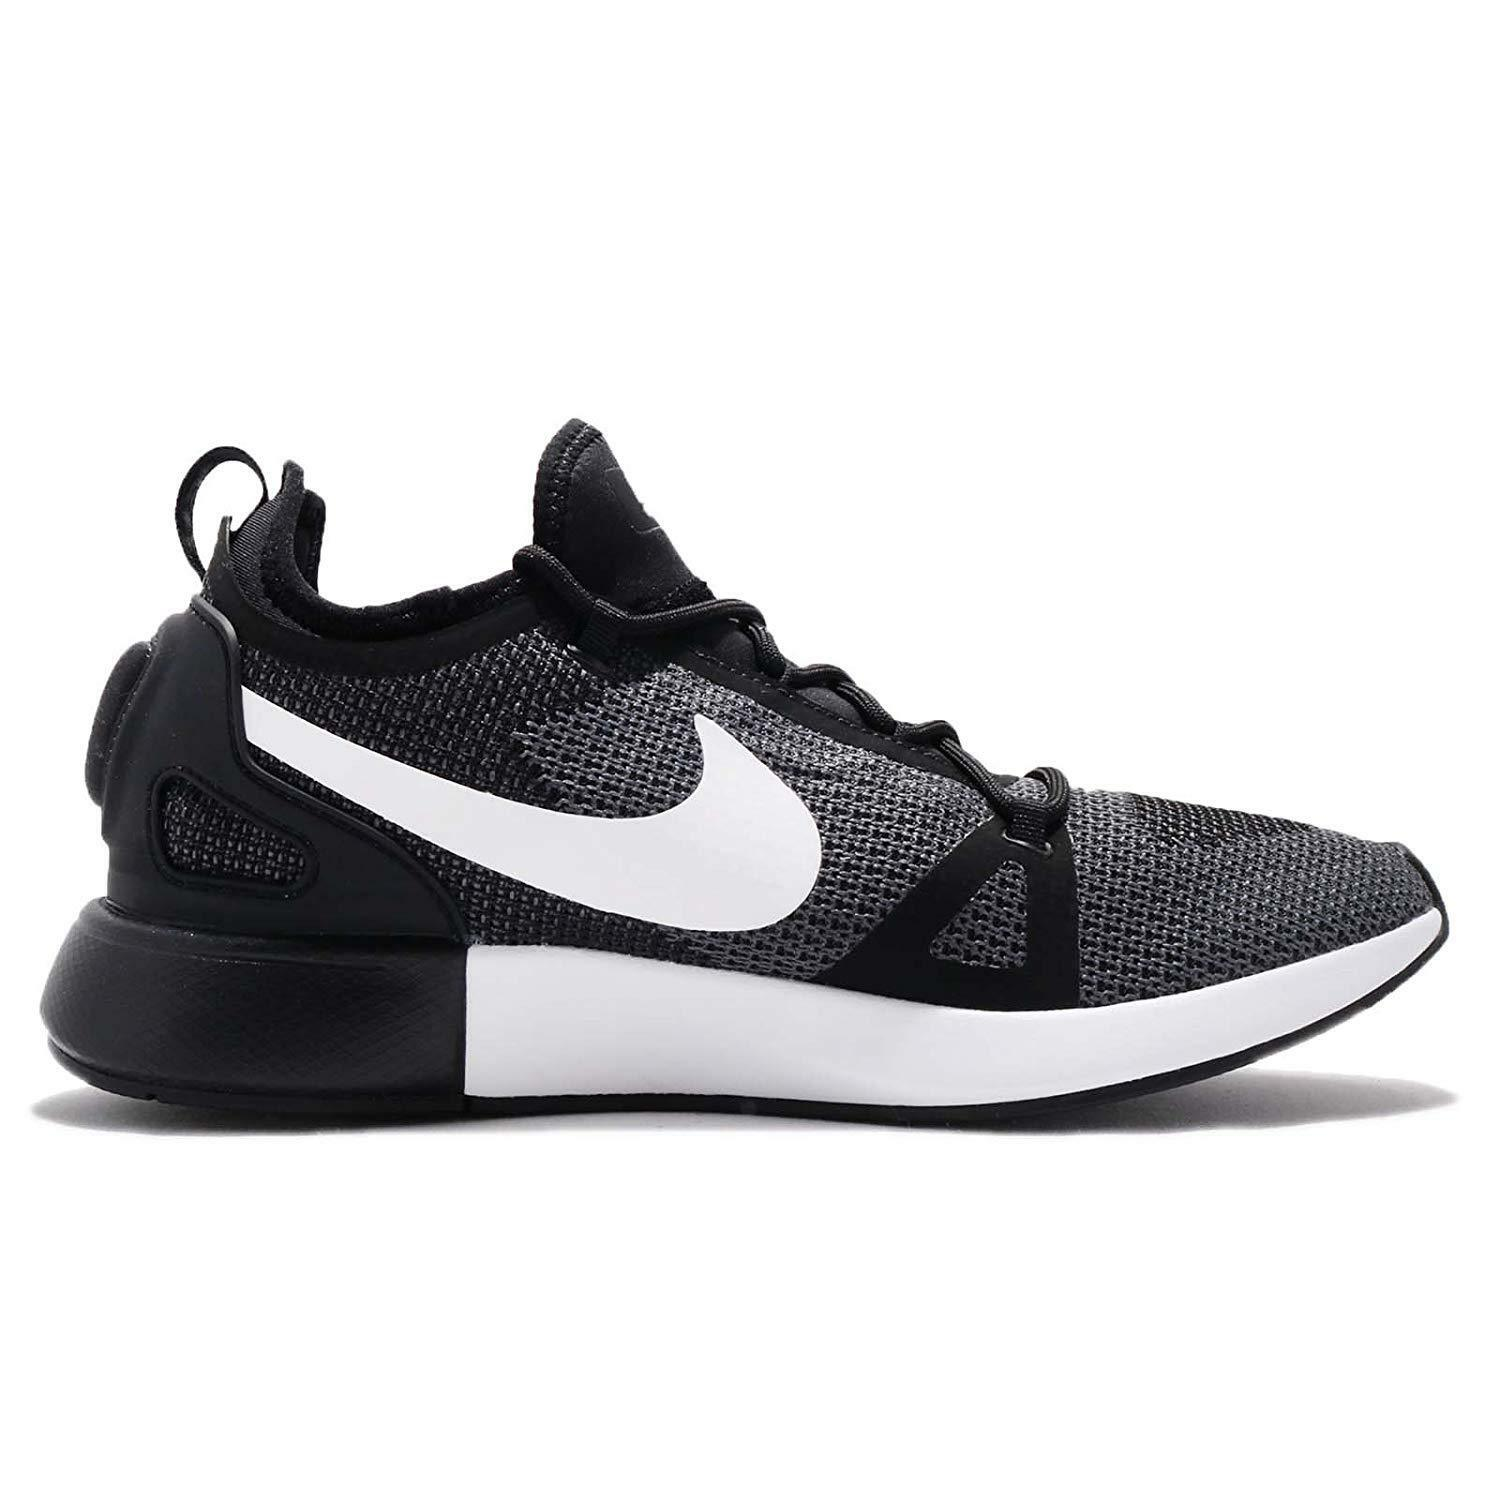 Nike Duel 918228 Racer Men's Running Shoe 918228 Duel 010 SIZE 12 US Retail NEW In Box eac774